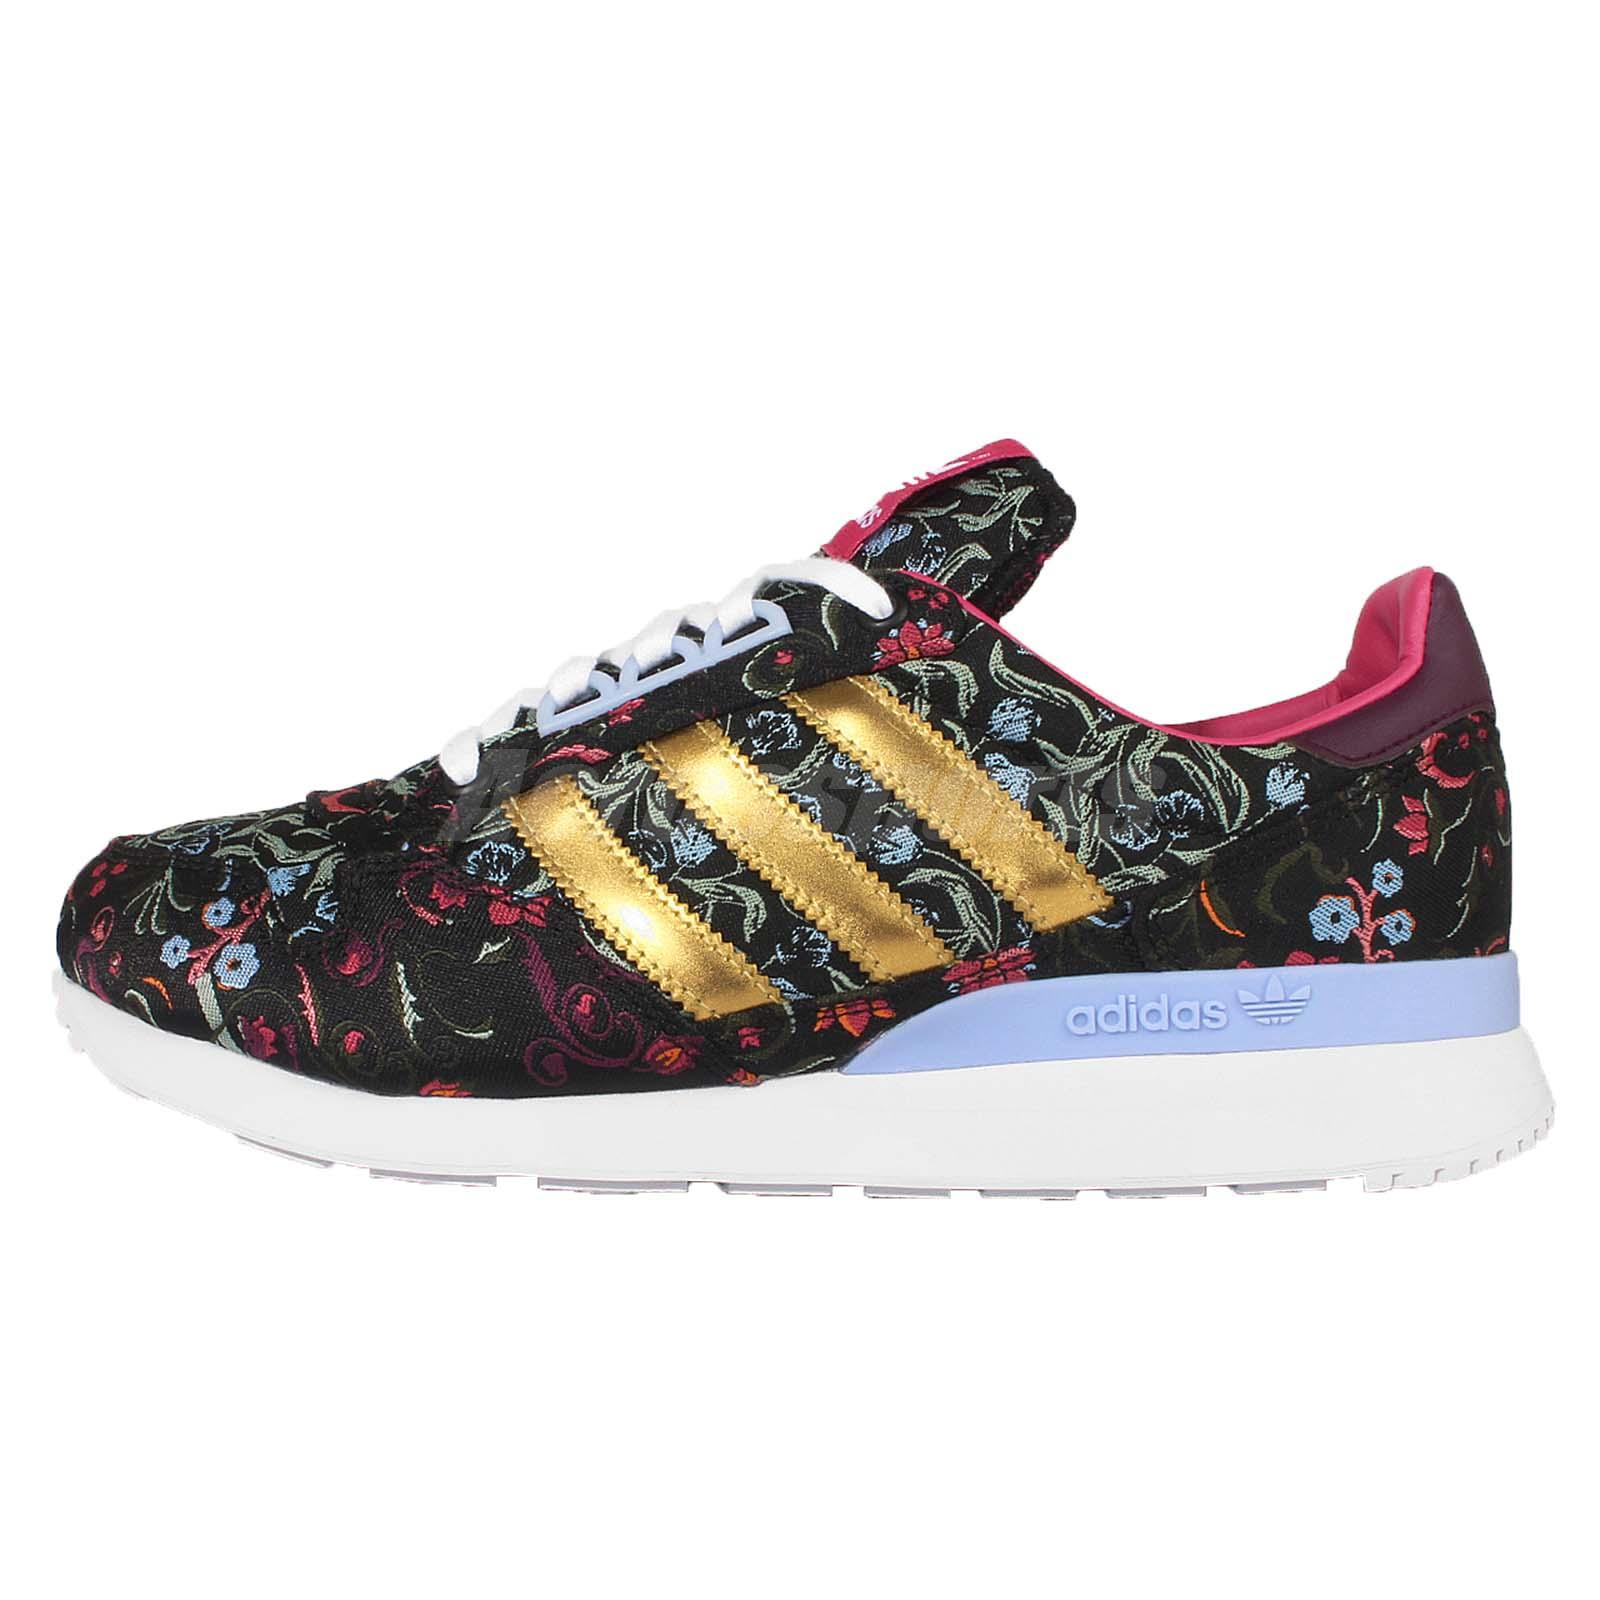 64ad224fe91c Buy zx 500 womens shoes   OFF64% Discounted